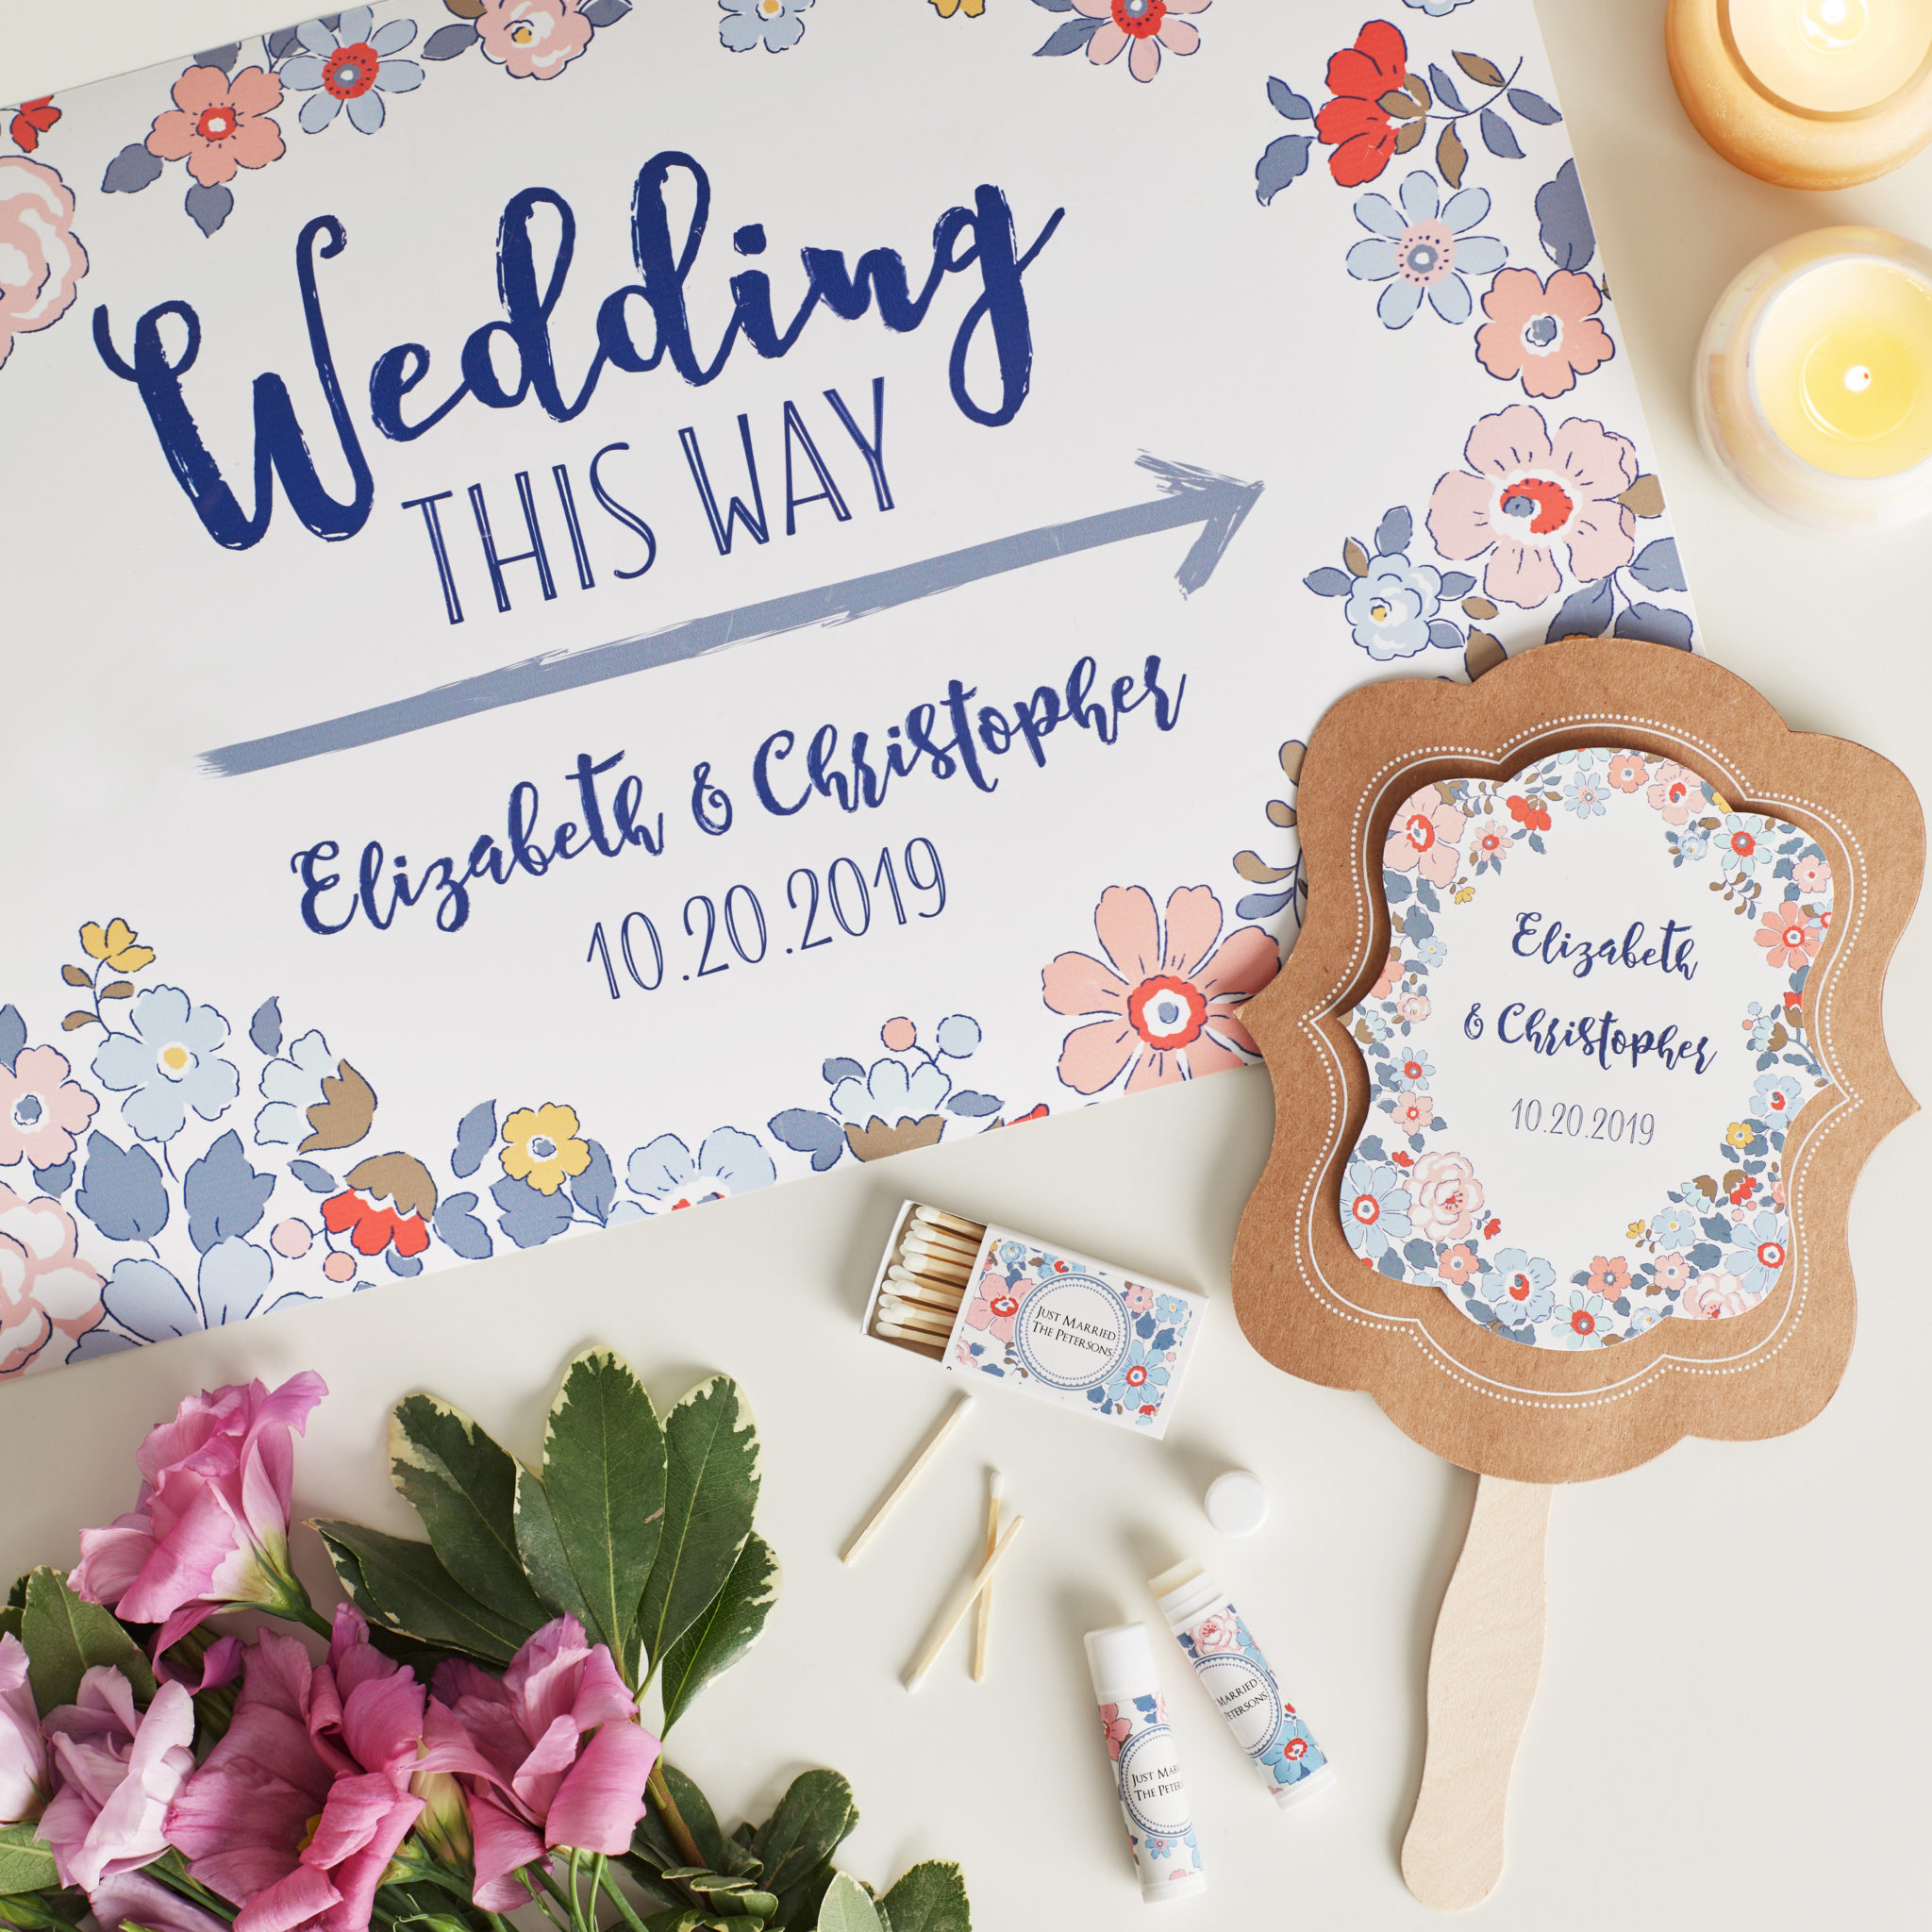 Cheerful Florals for Weddings